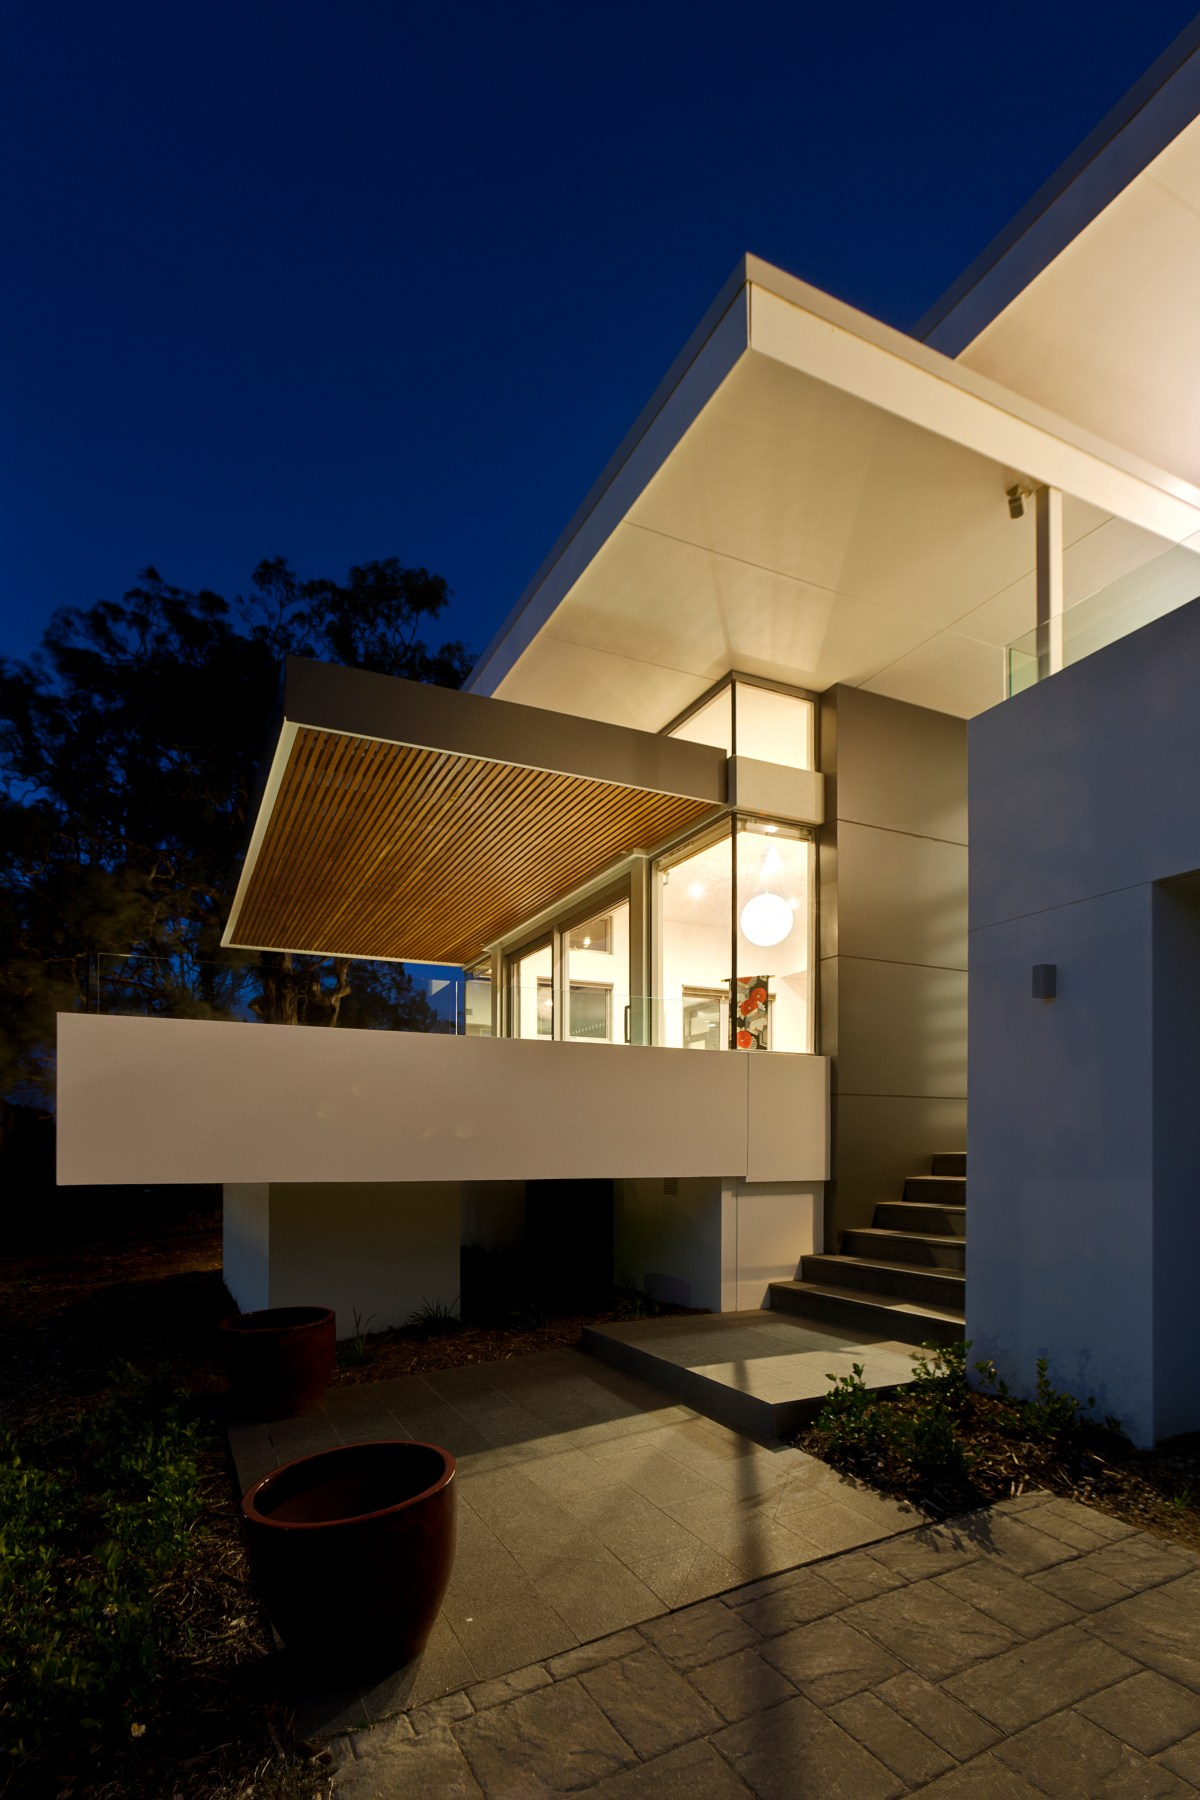 McGlade House - cantilevered deck with midcentury modern aesthetic